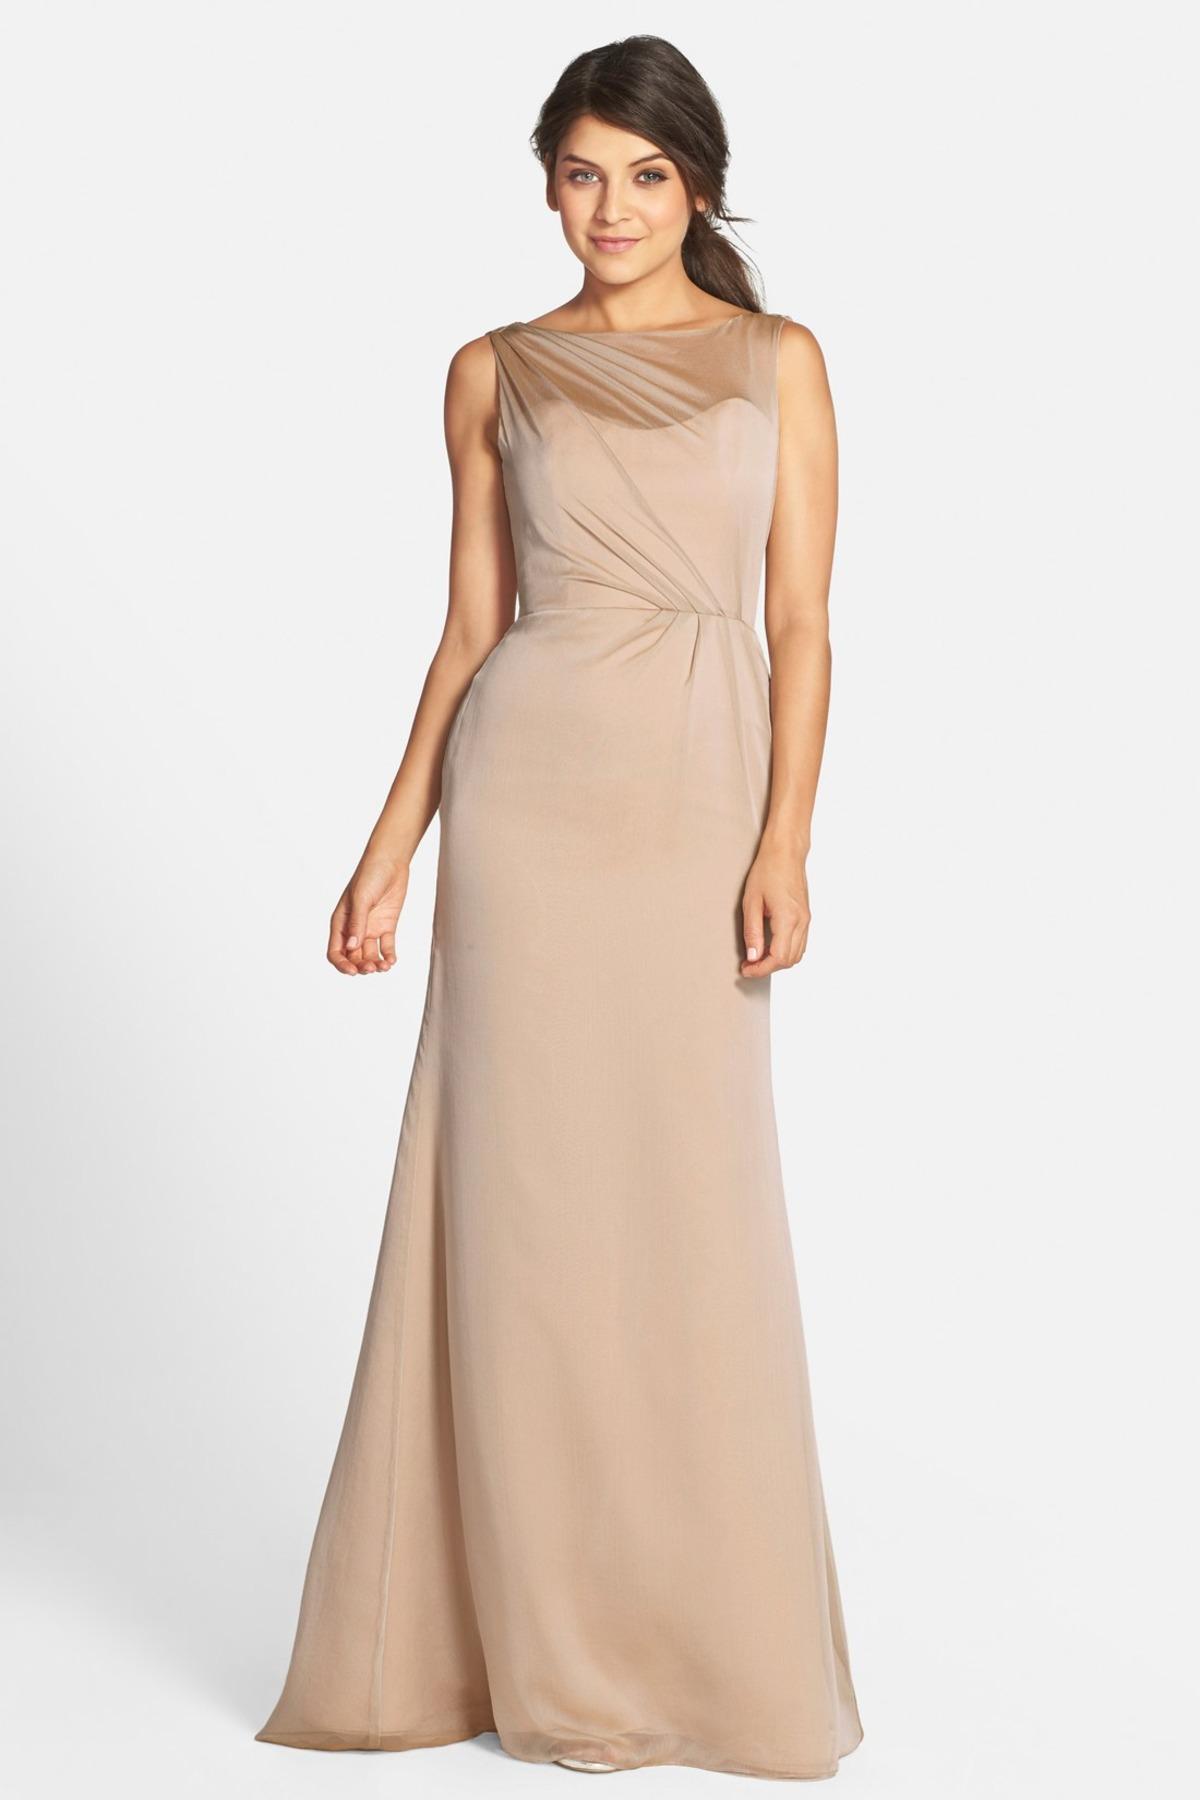 8aba4e1d978 Lyst - Jim Hjelm Occasions Drape Back Luminescent Chiffon A-line Gown